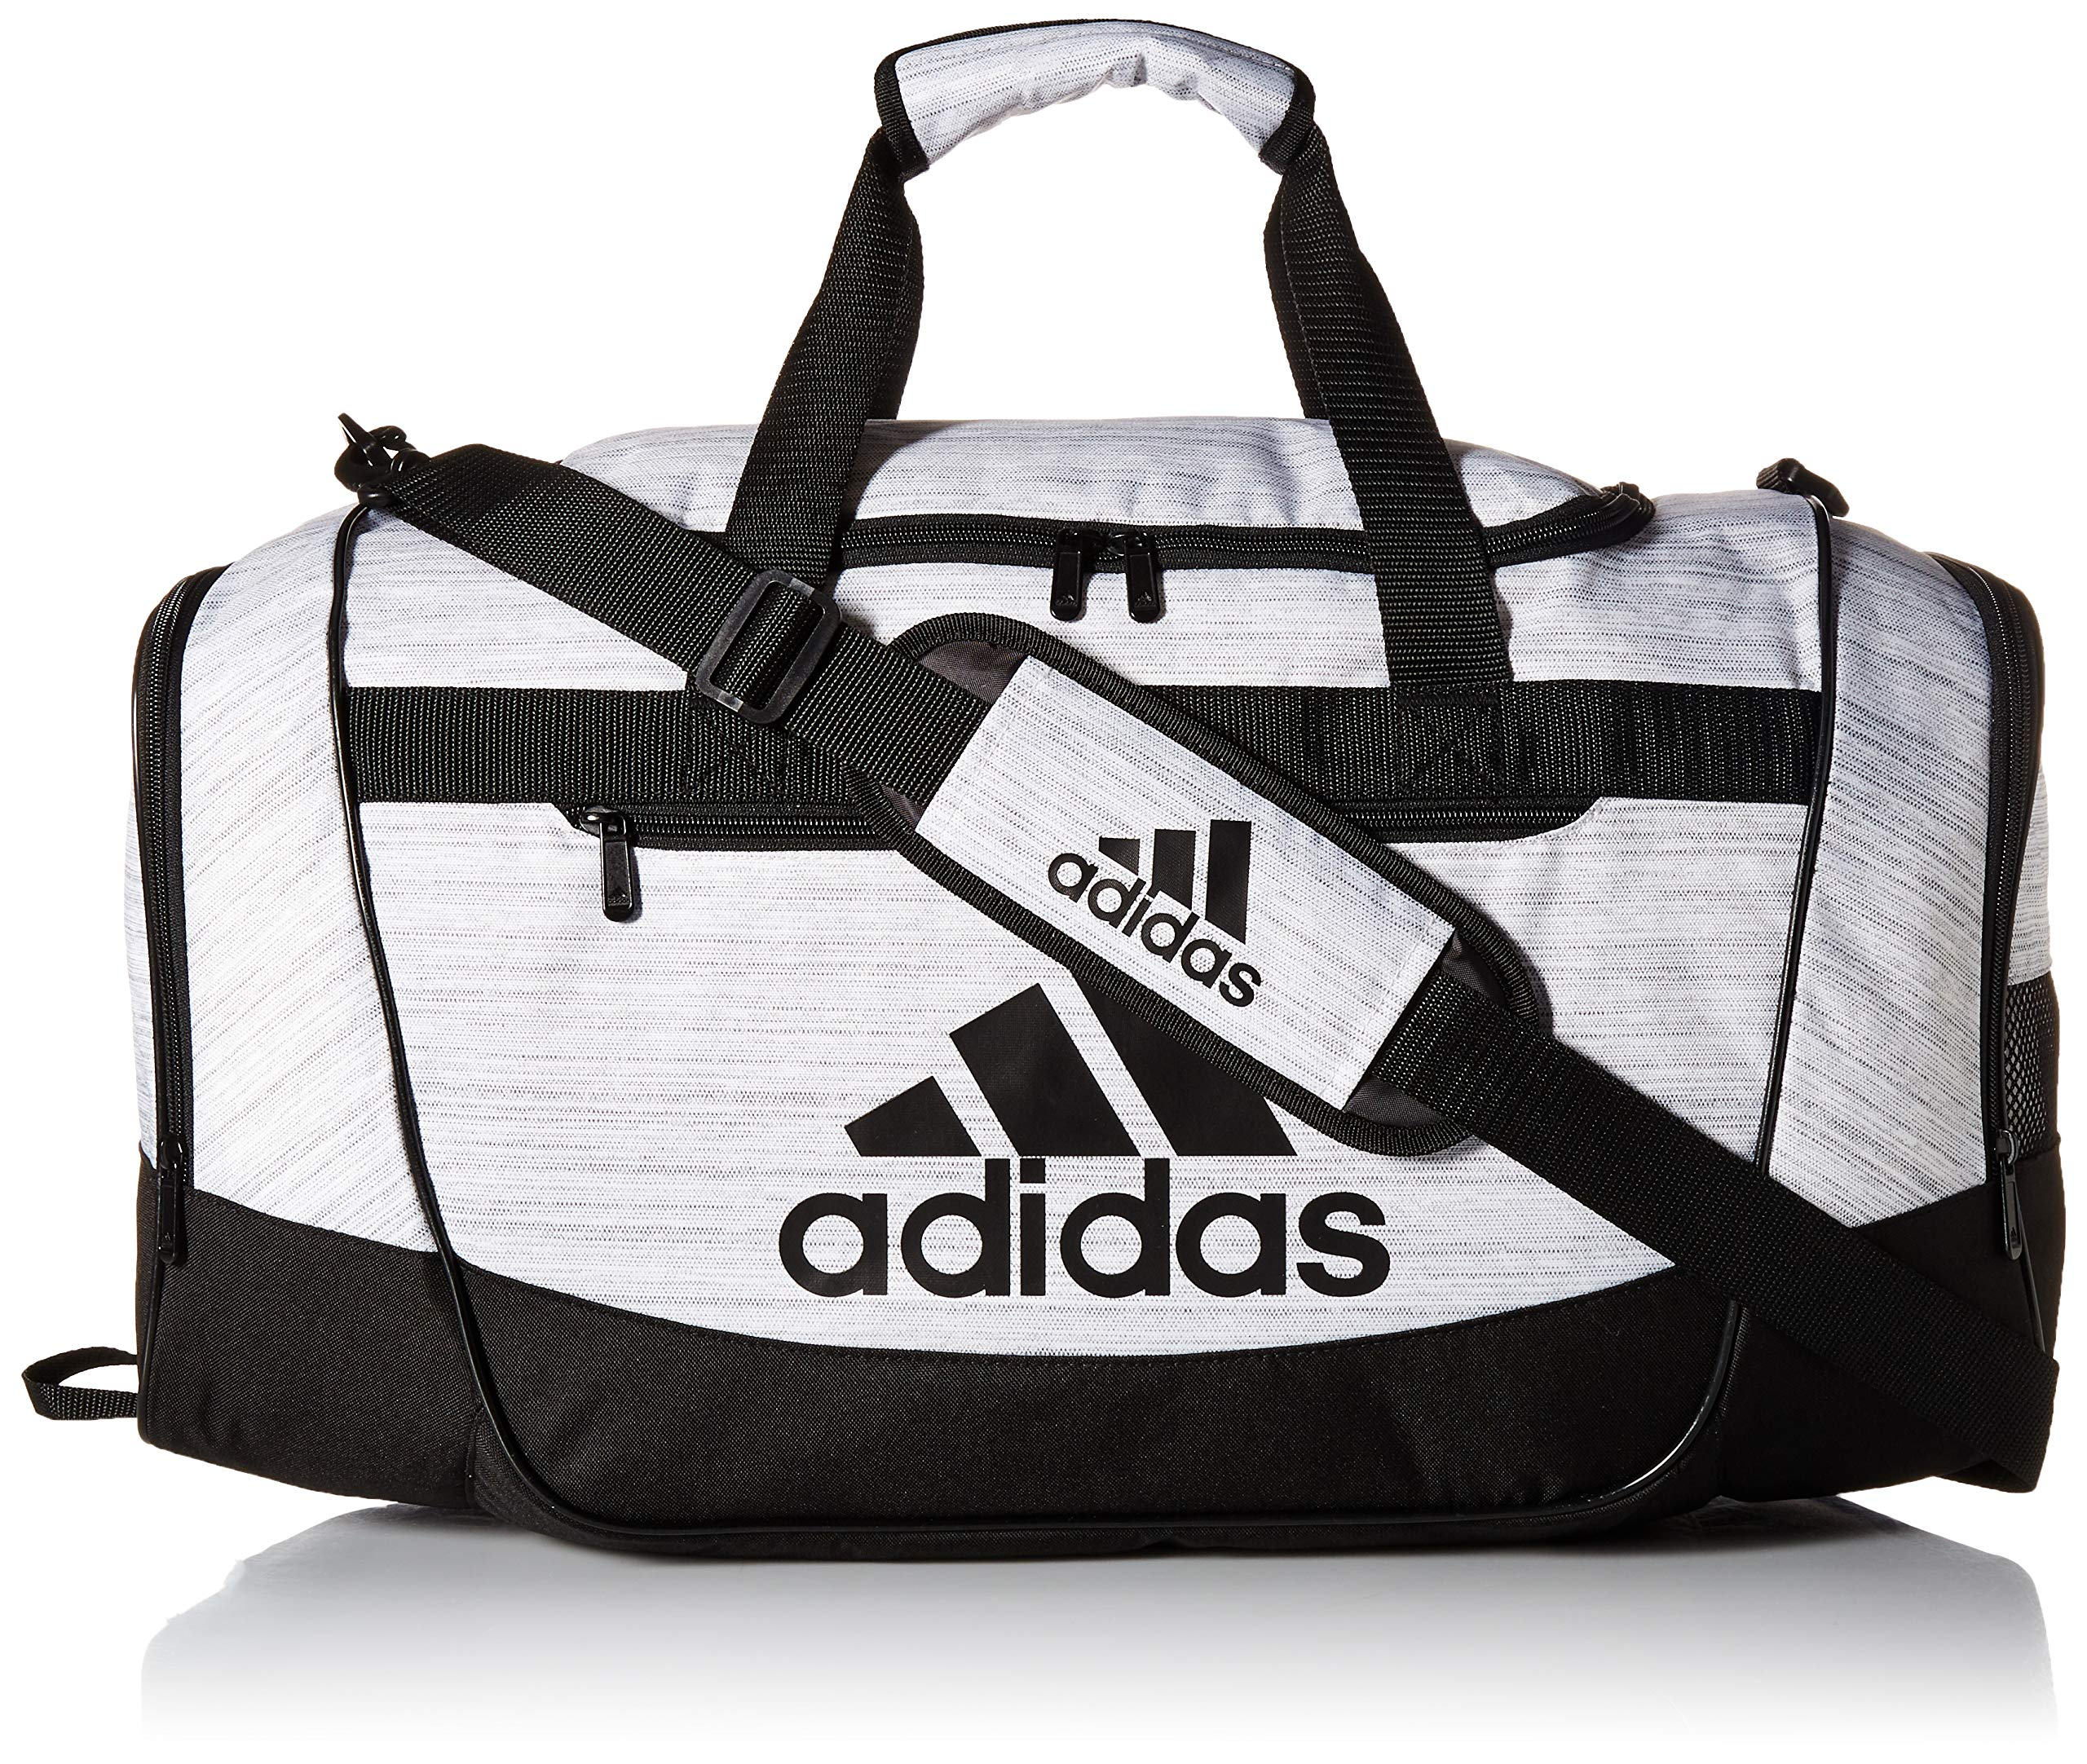 adidas Defender III Duffel Bag, White Two Tone/Black, Medium